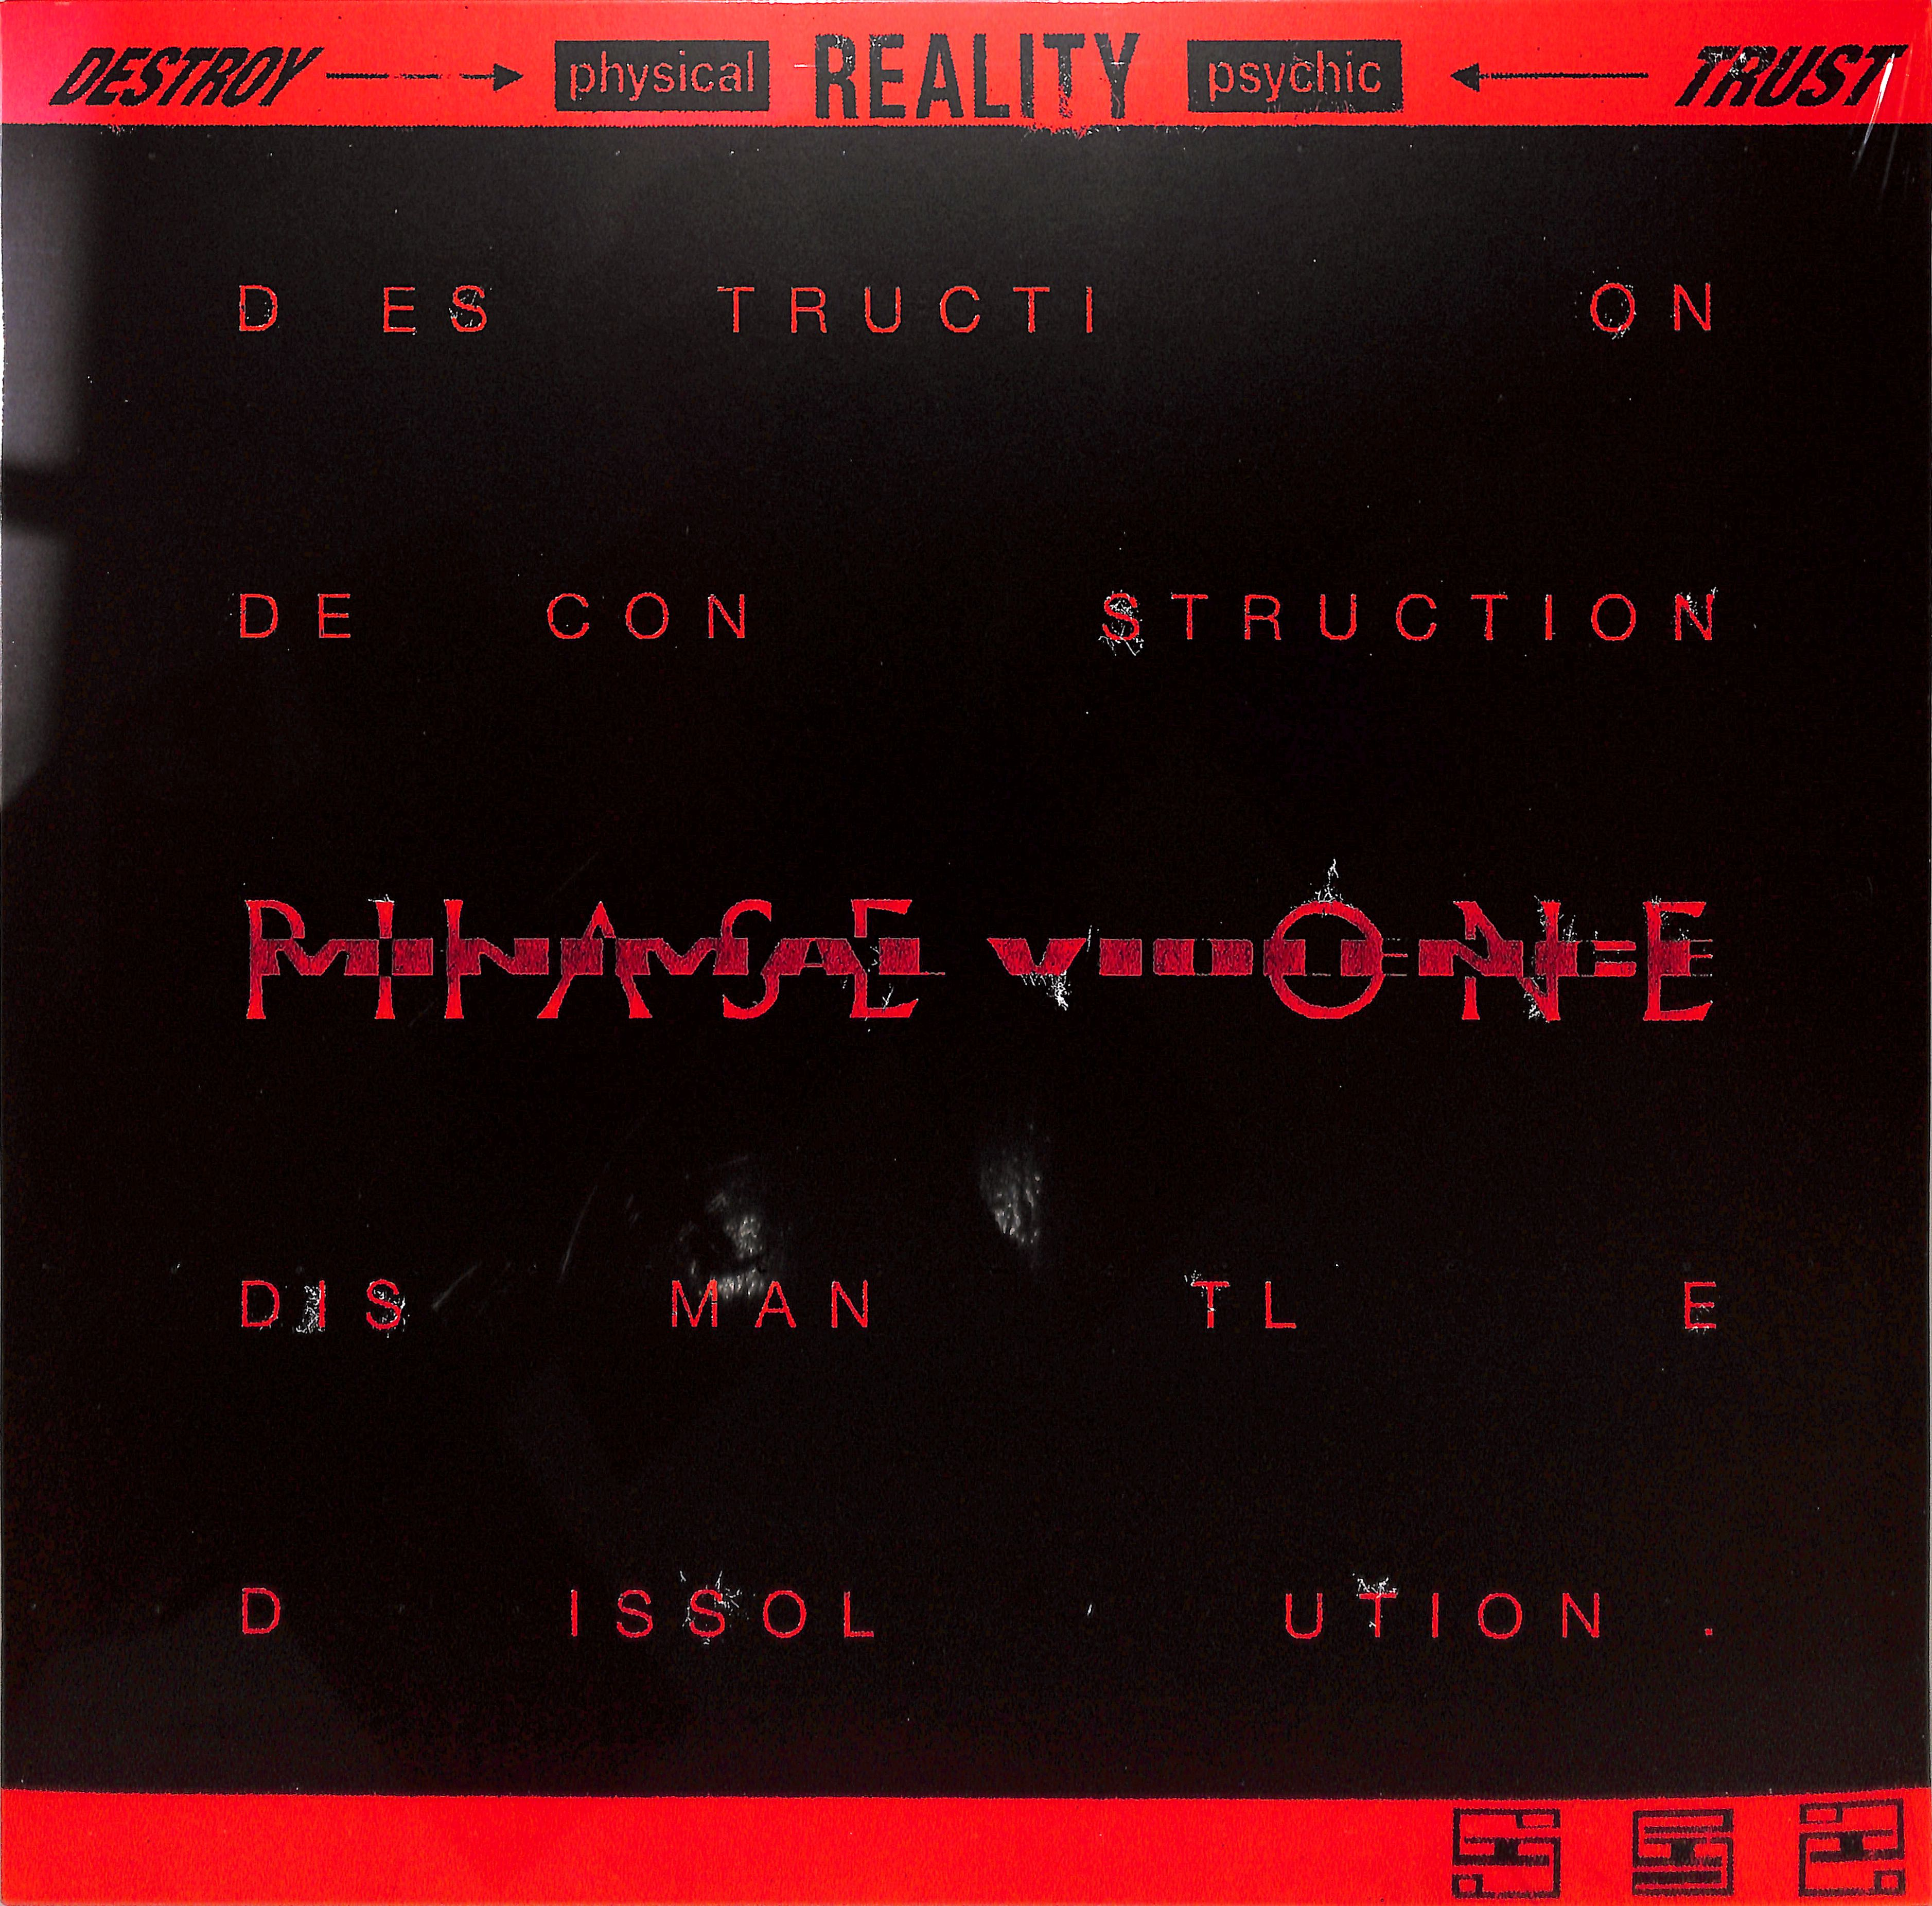 Minimal Violence - DESTROY ---> PHYSICAL REALITY PSYCHIC <--- TRUST PHASE ONE